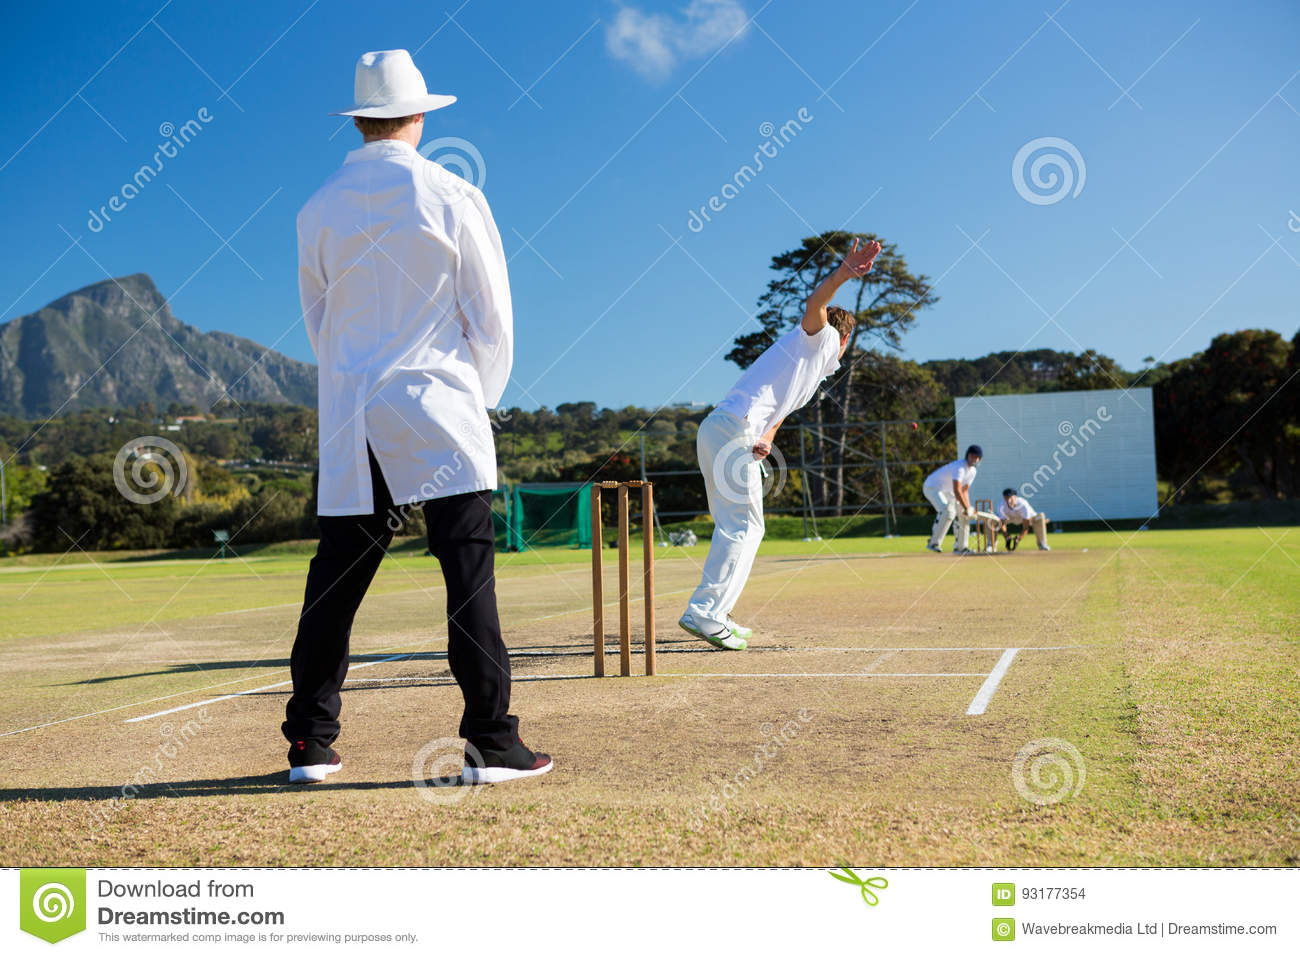 Sports team playing cricket on pitch